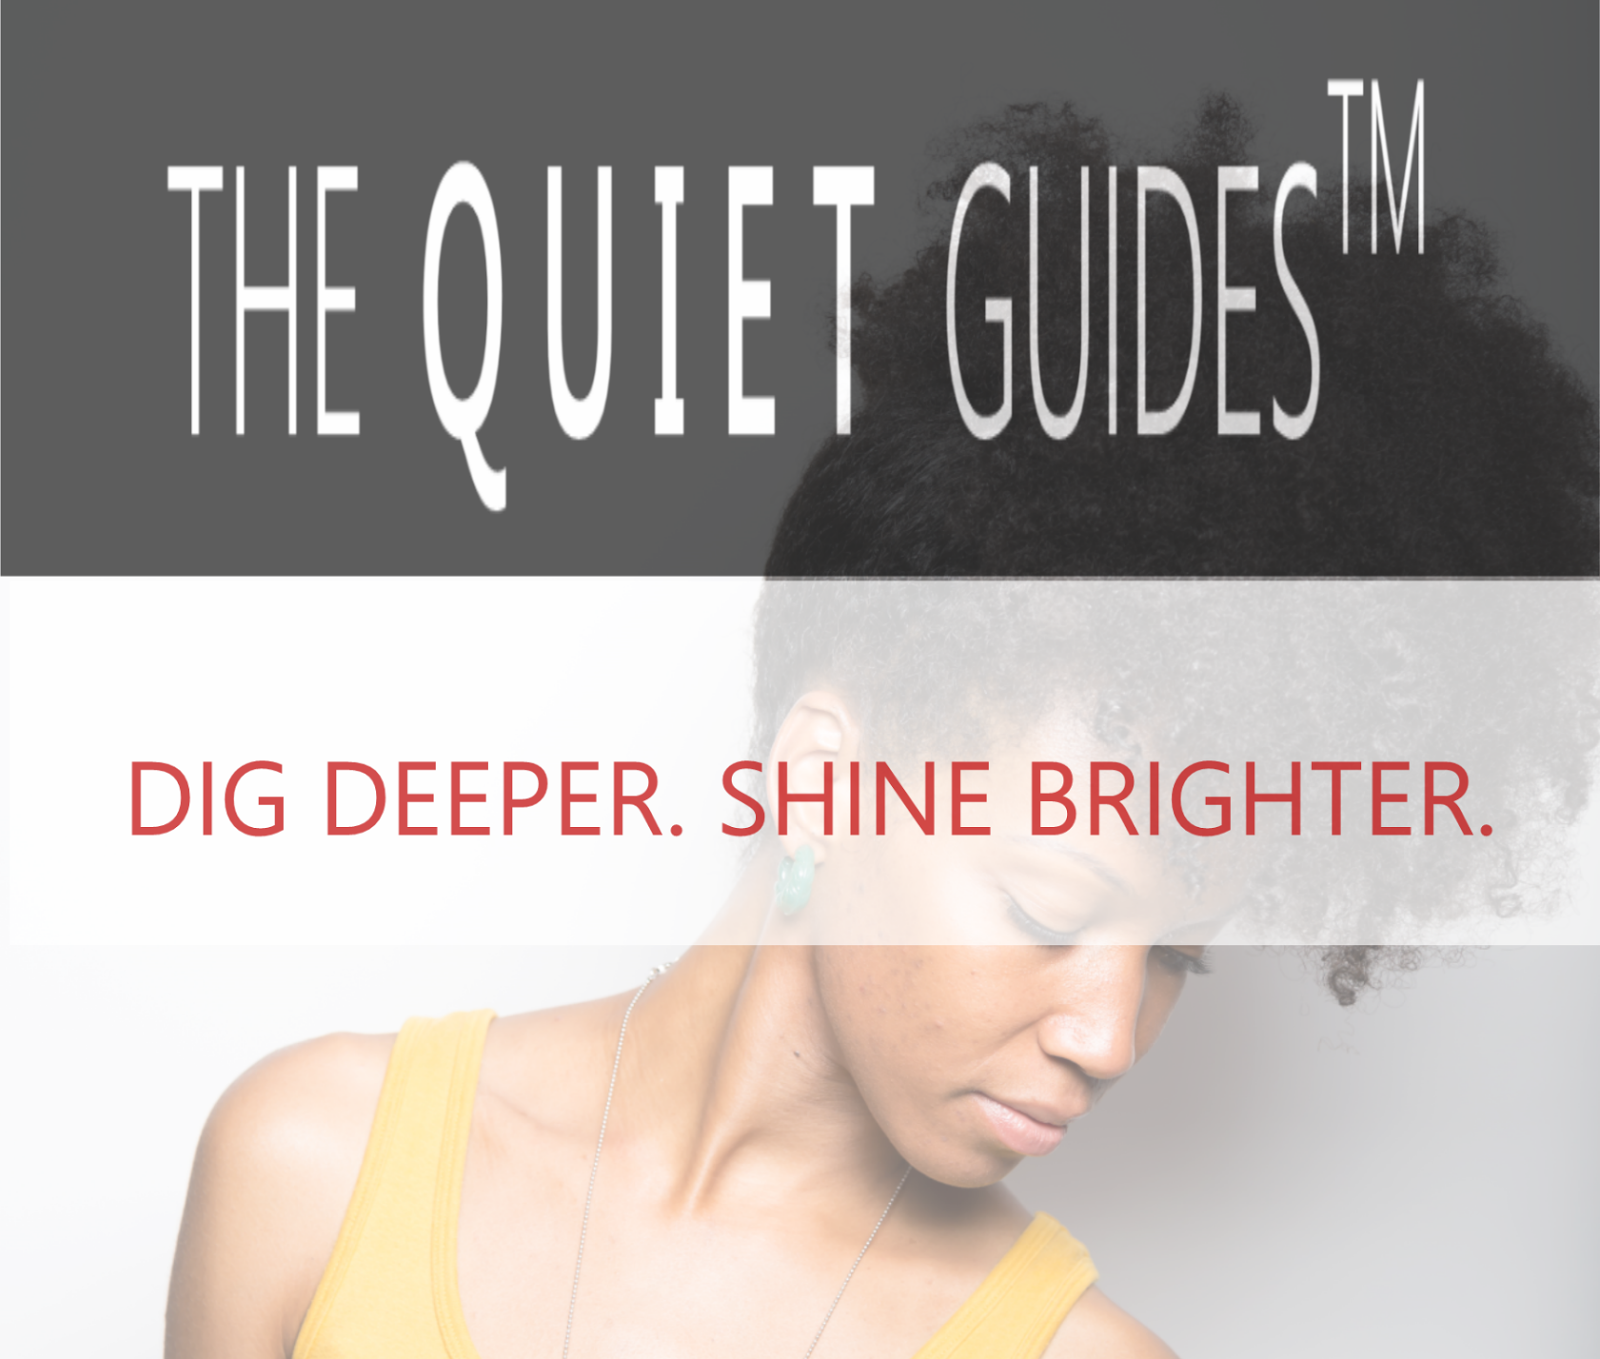 THE QUIET GUIDES